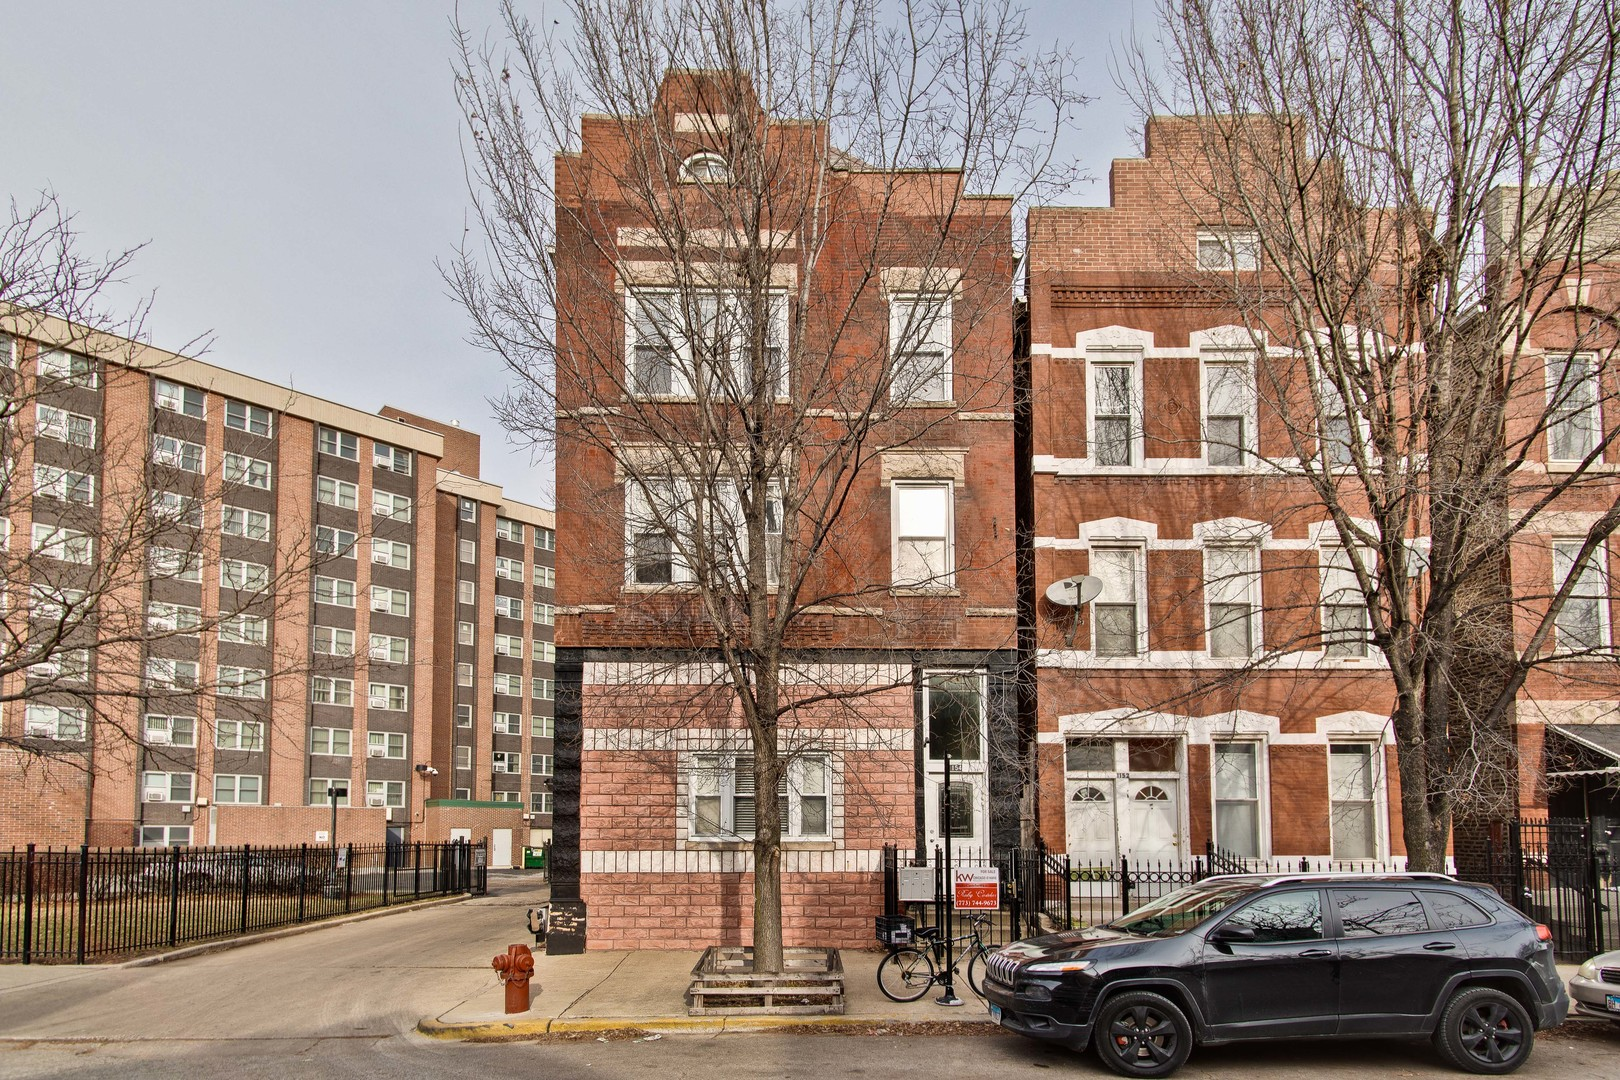 1154 West 17th Street, Chicago-Near West Side, Illinois